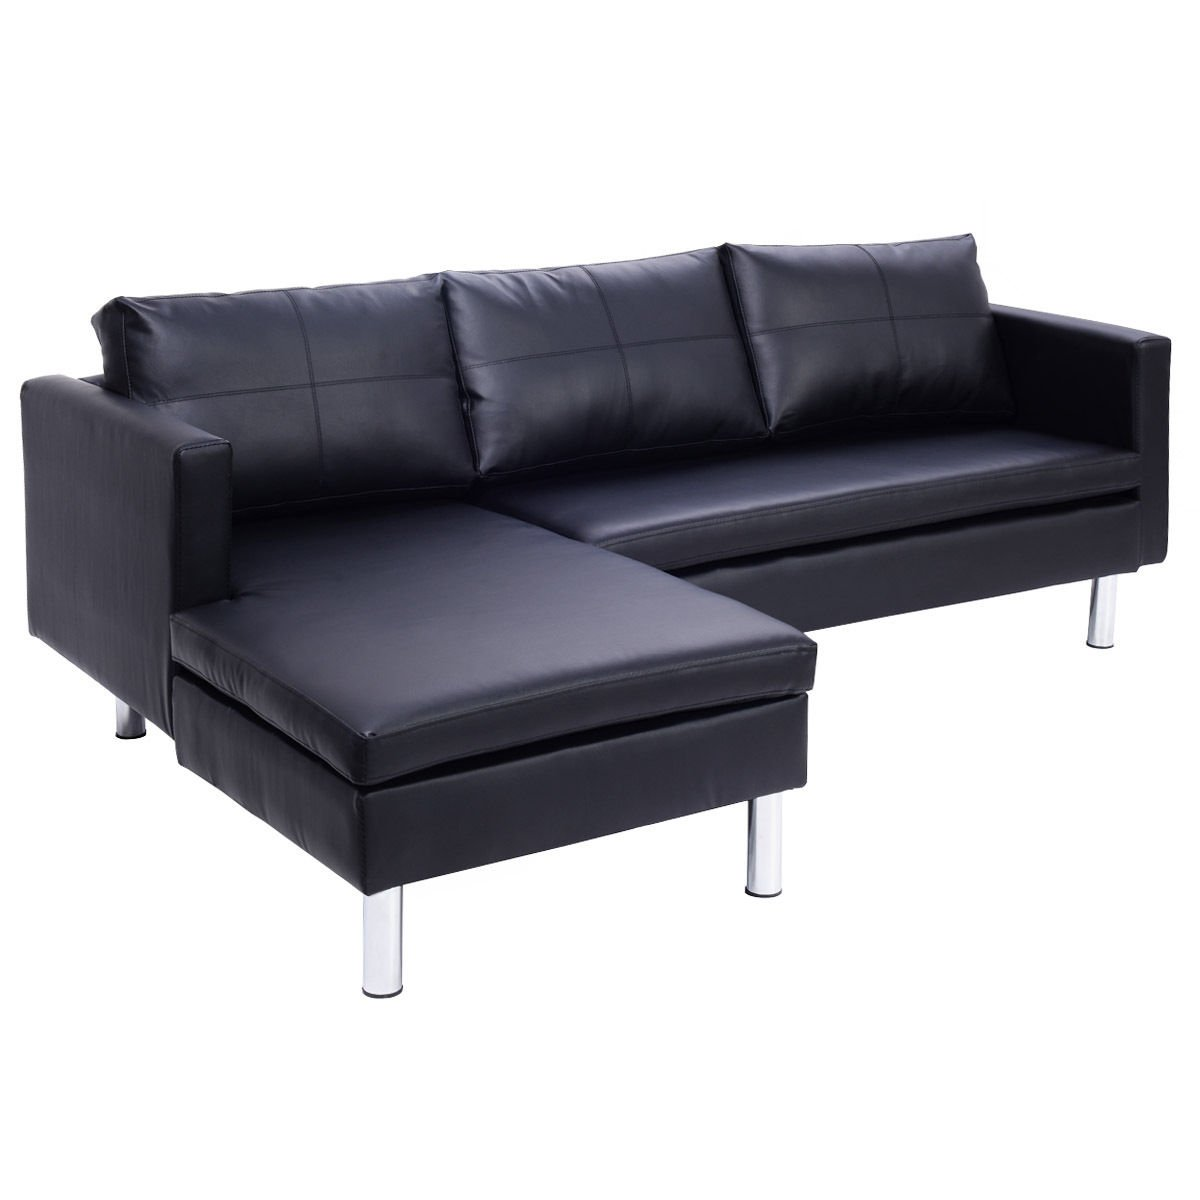 Get Quotations · Giantex Black 3 Leather Seat Sofa And Chaise Lounge Modern  Furniture Slipcover